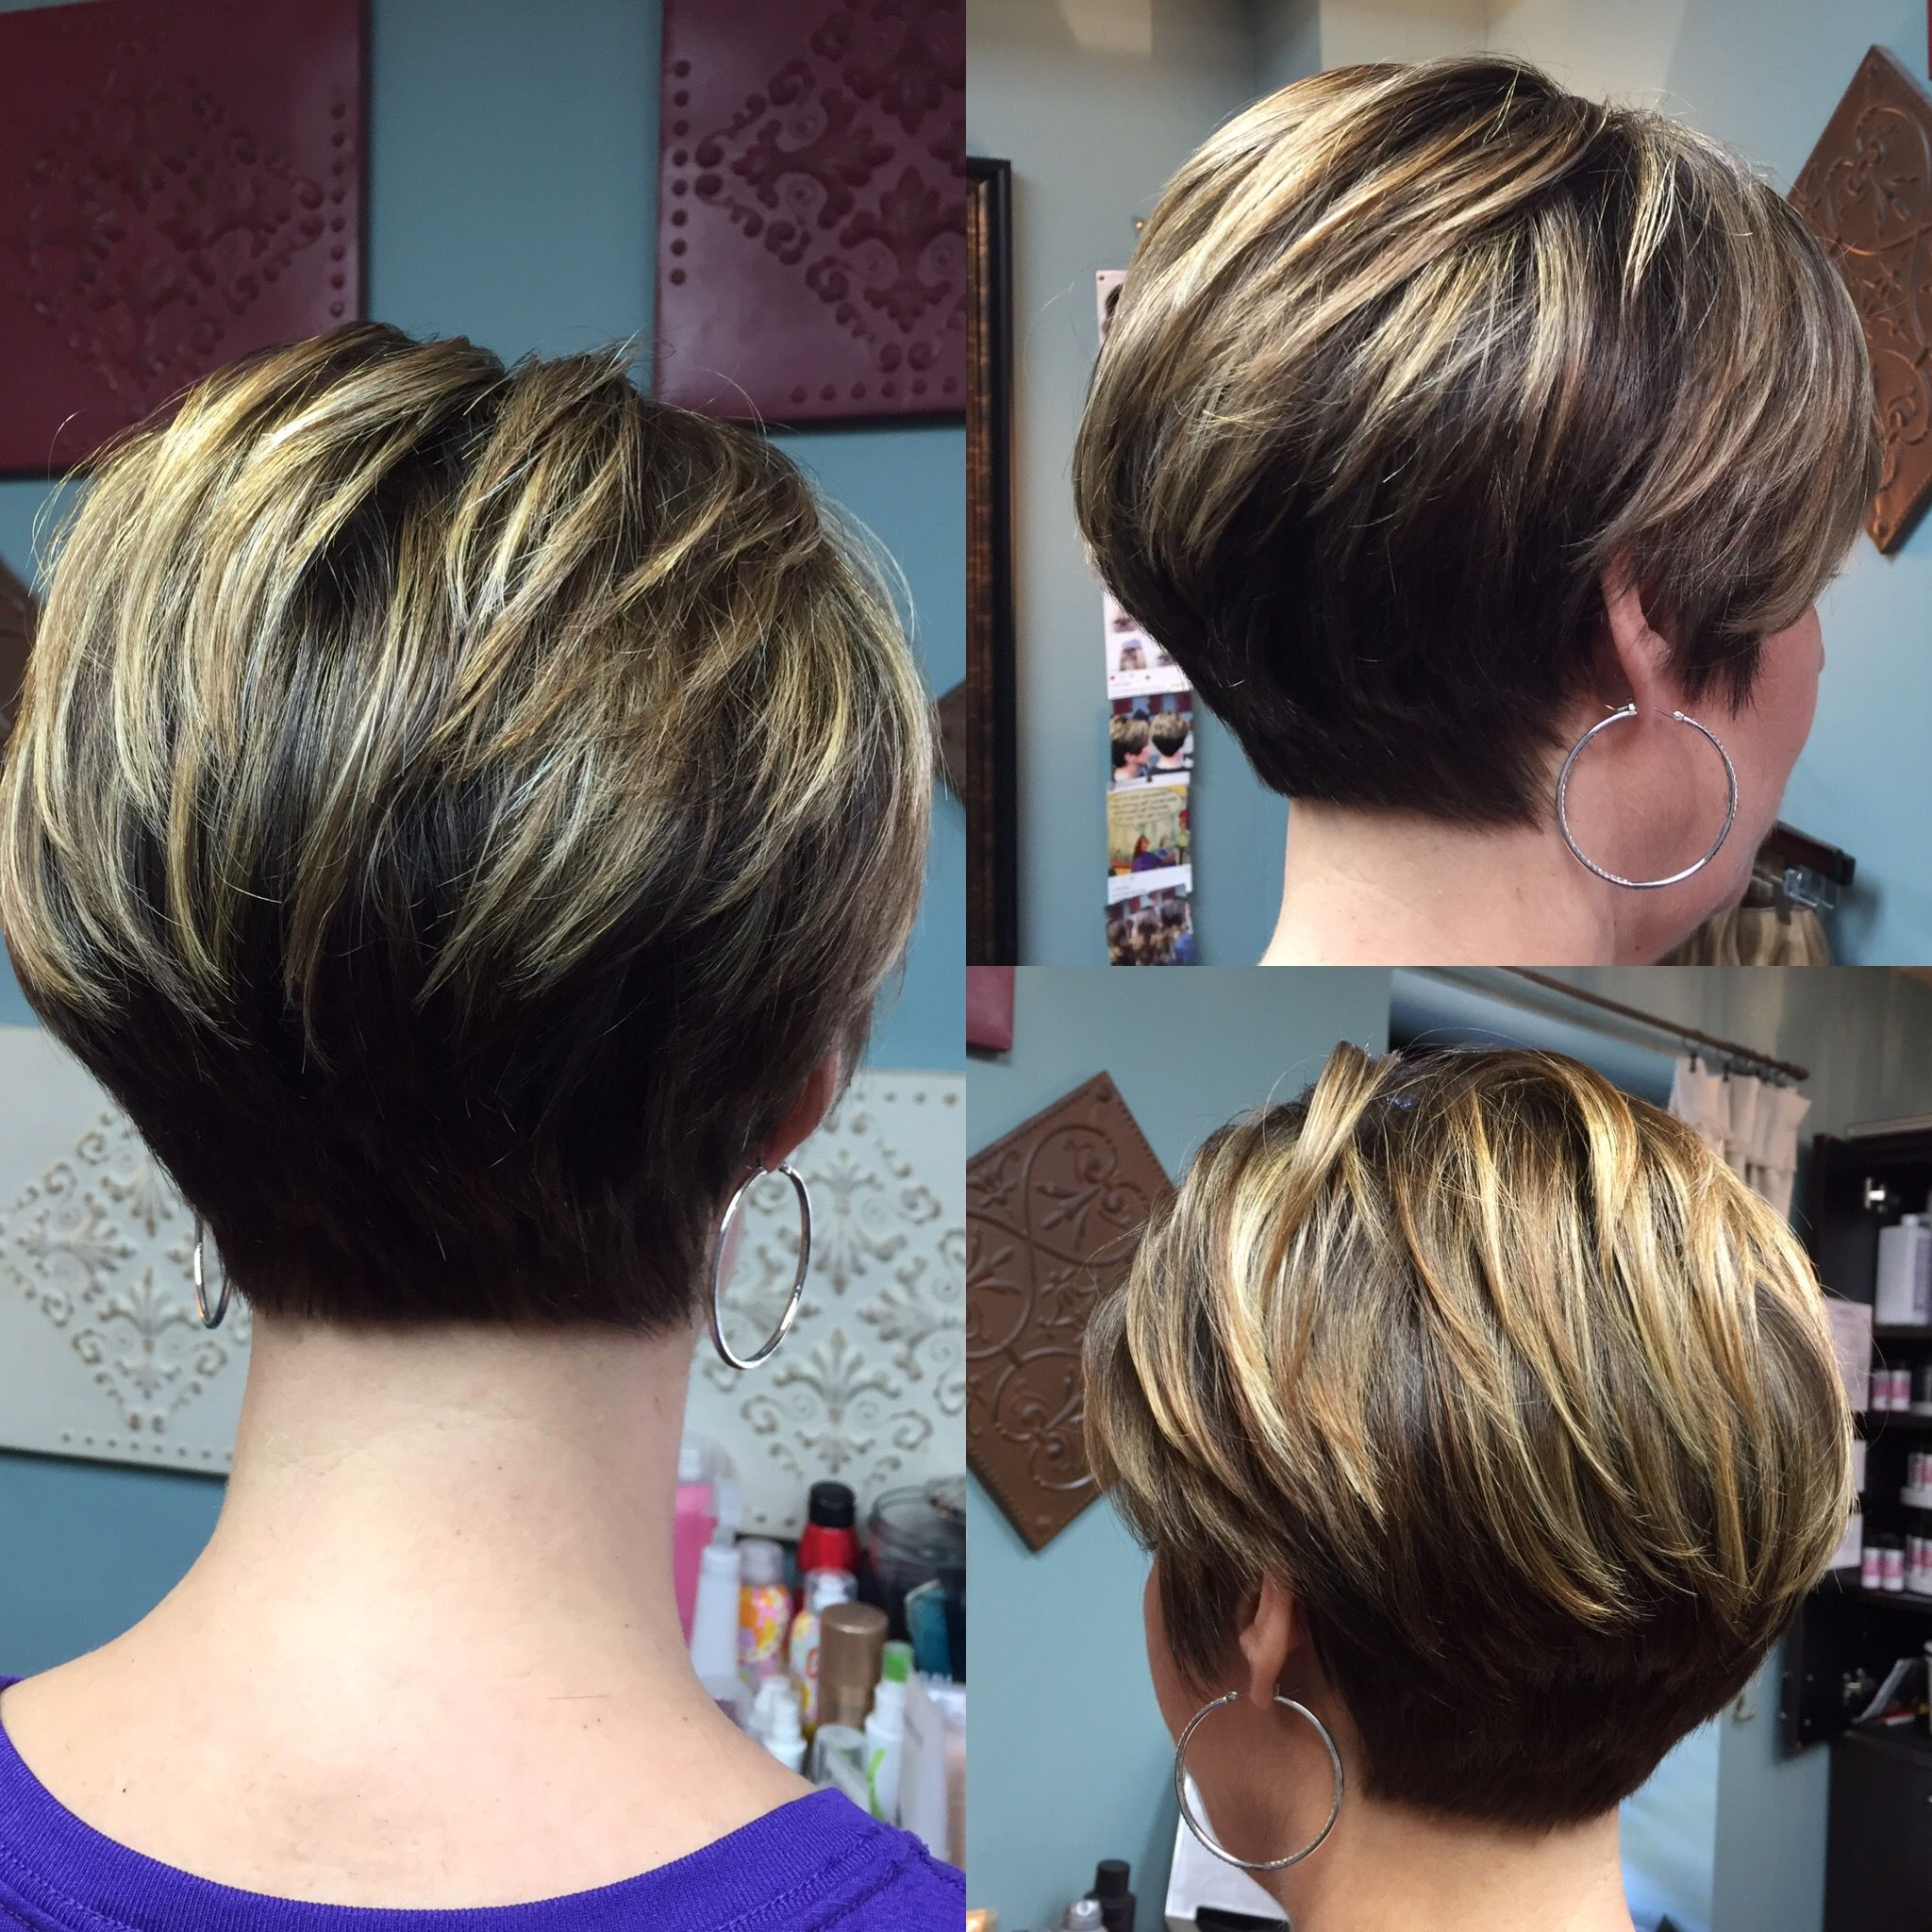 100 Short Haircut Styles for Over 50 Women in 2021 d2ce55199cdb9bd0827e14b146c62a74